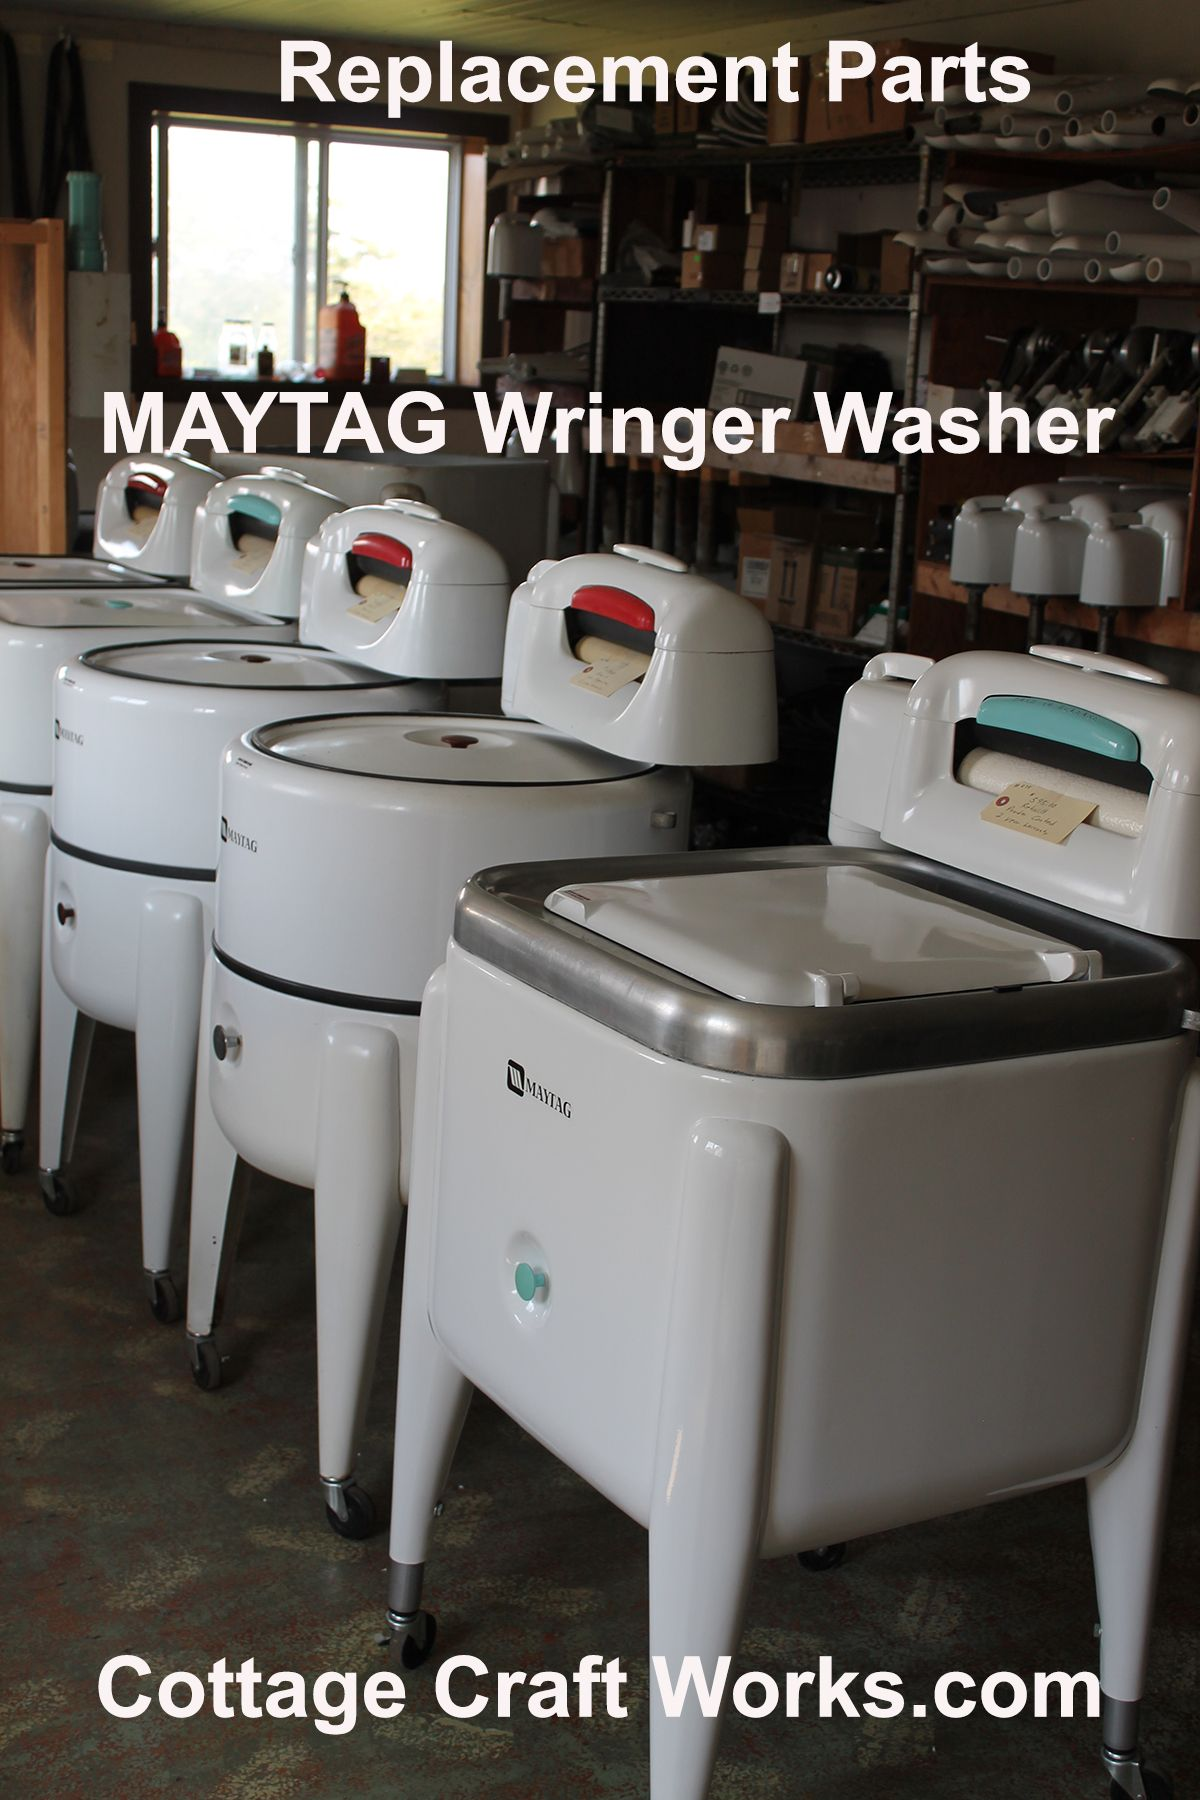 Vintage Maytag Wringer Washer Replacement Parts We now carry